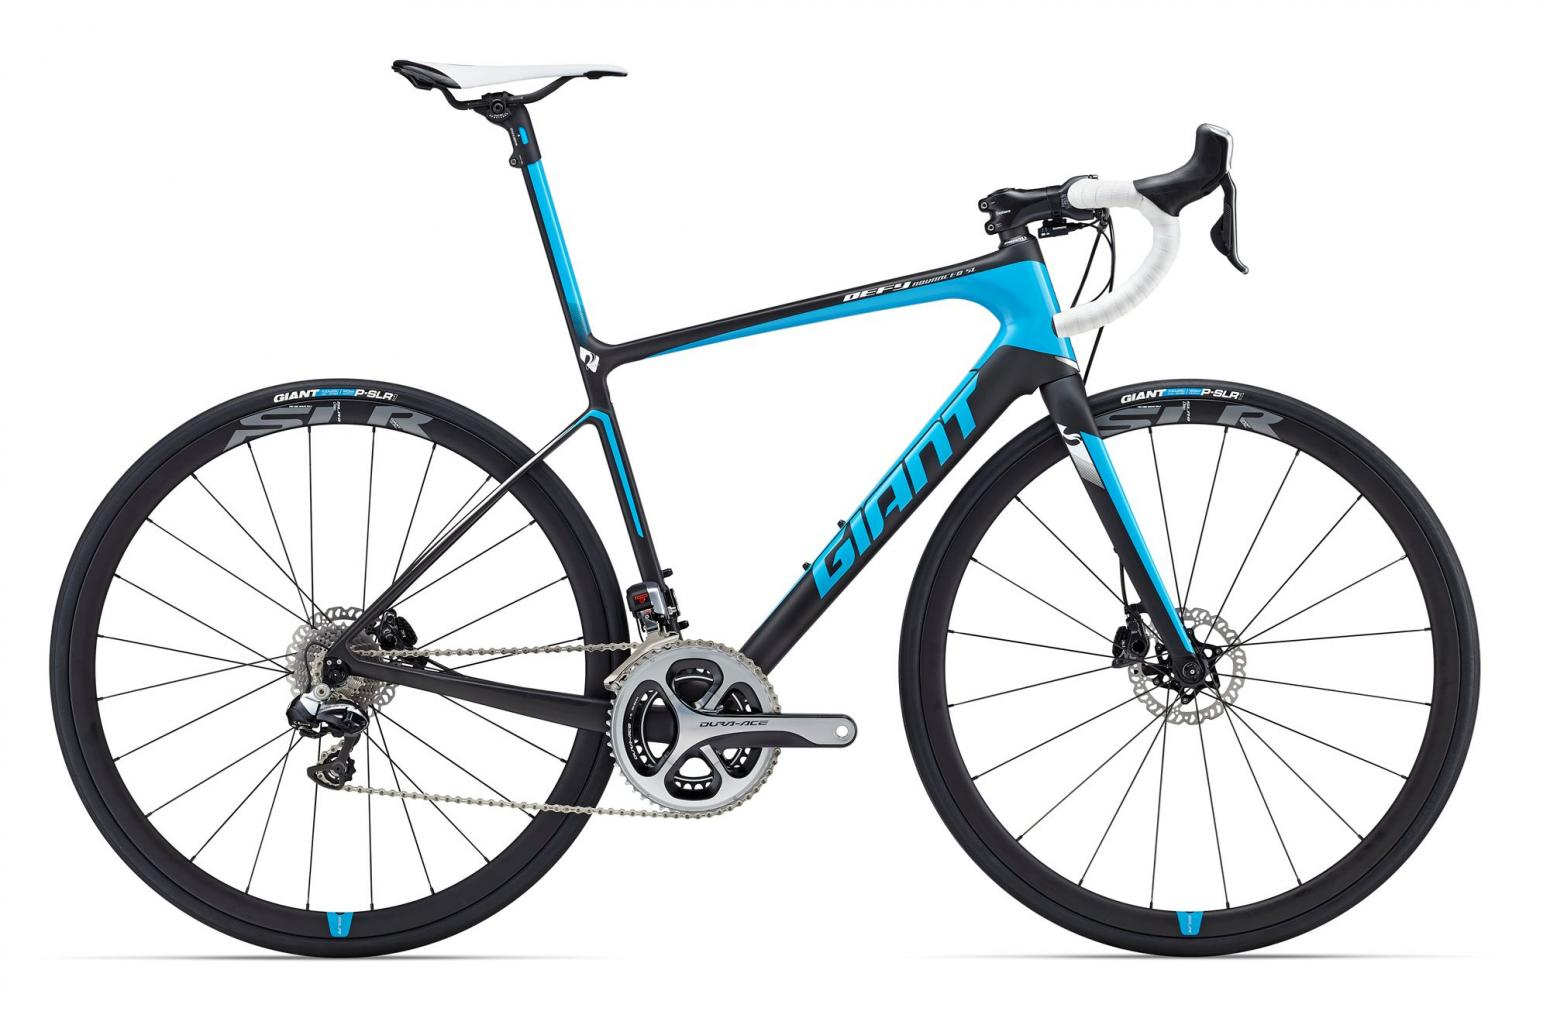 Giant Rennvelo Endurance Defy Advanced SL 0 2016